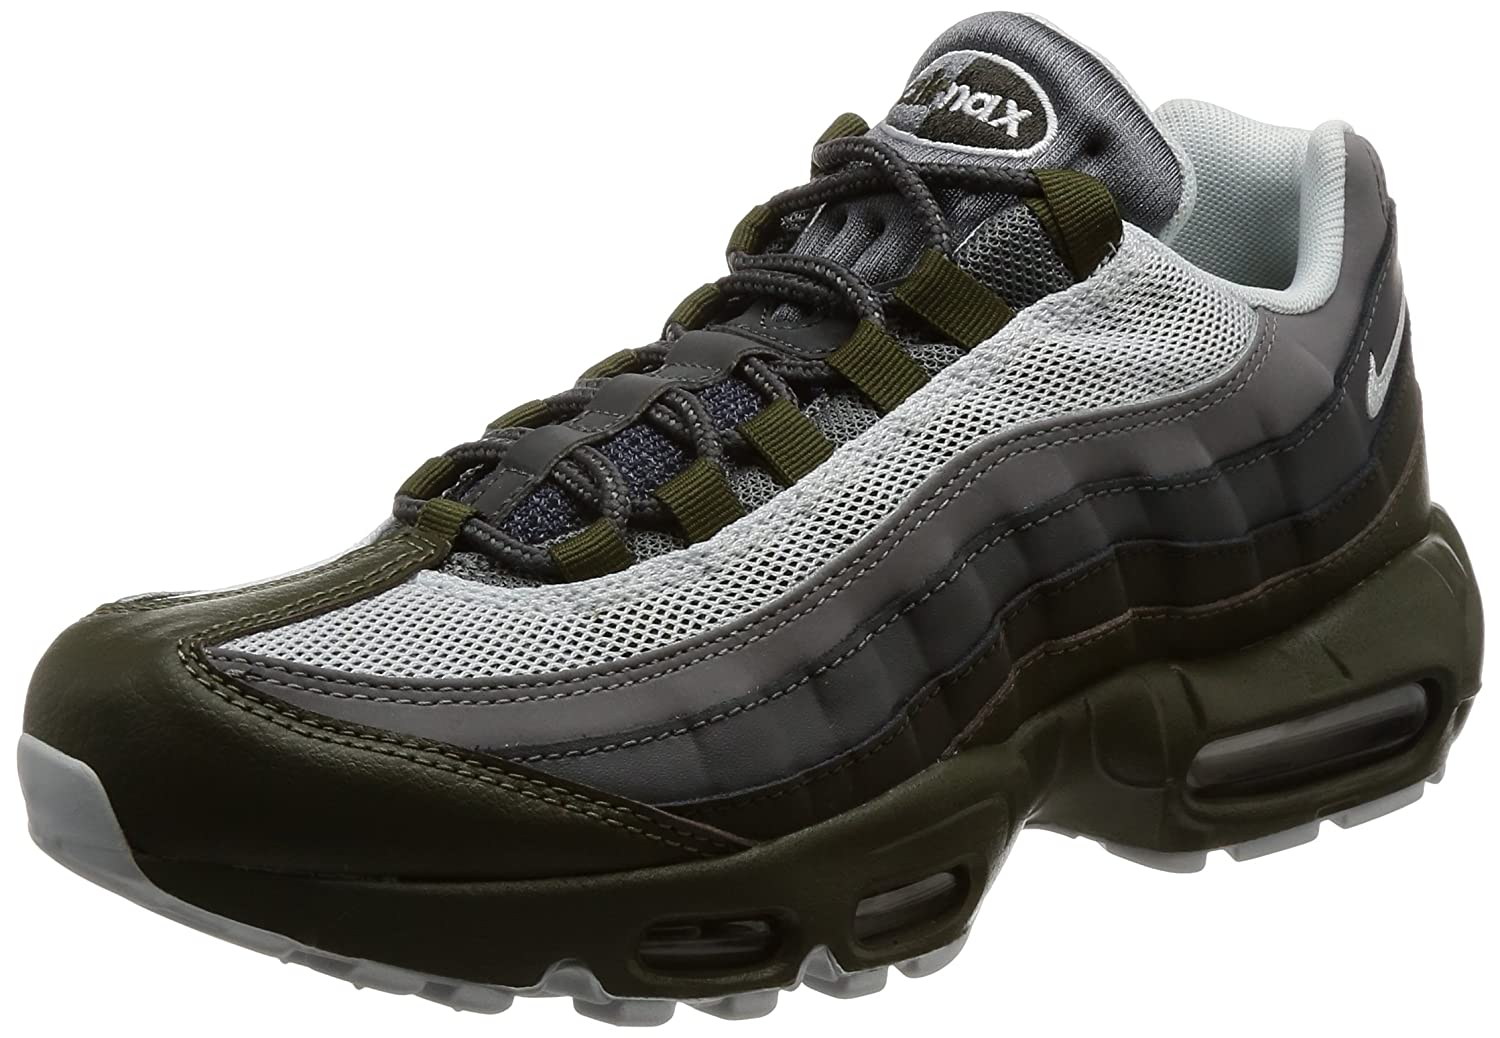 Cargo Khaki Pure Platinum Nike Air Max 95 No-Sew Men's shoes Grey